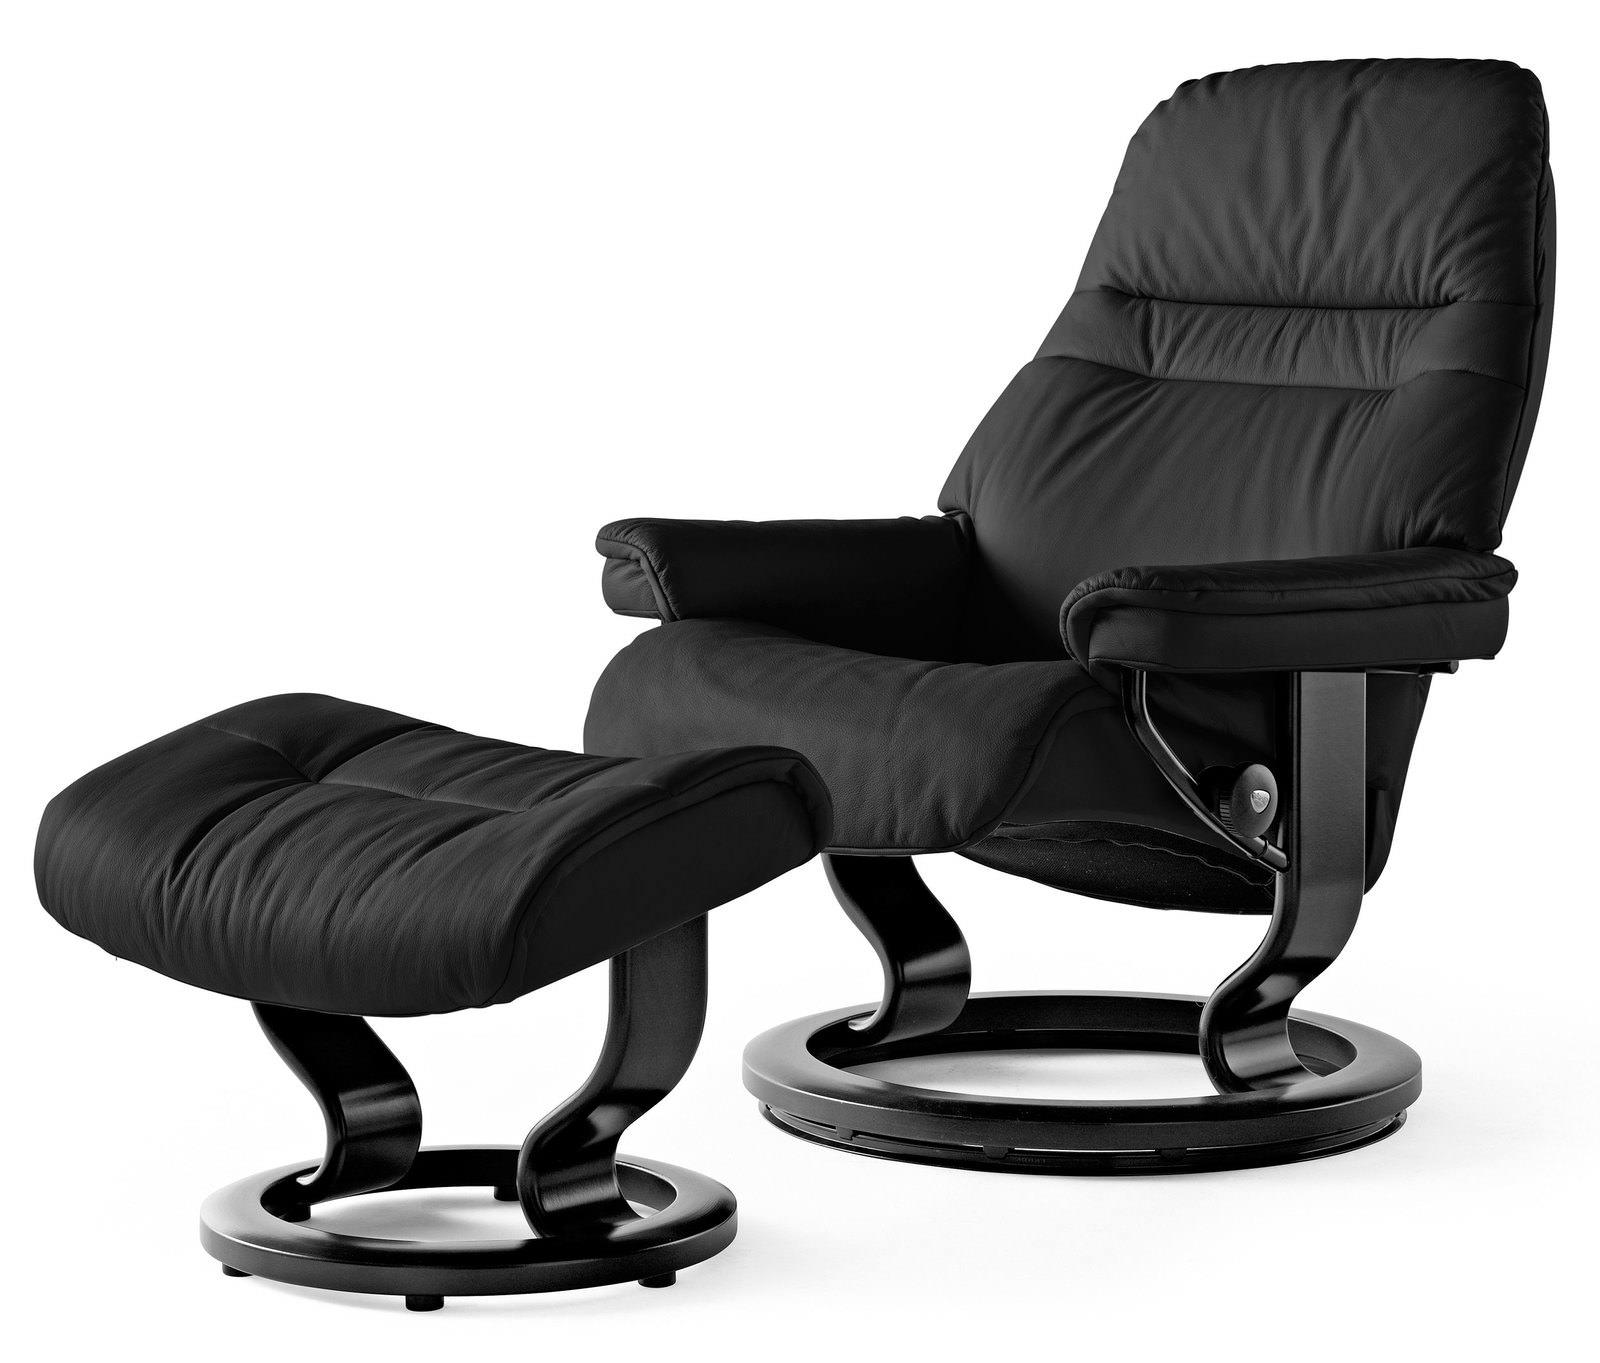 stressless stressless sessel online entdecken schaffrath ihr m belhaus. Black Bedroom Furniture Sets. Home Design Ideas